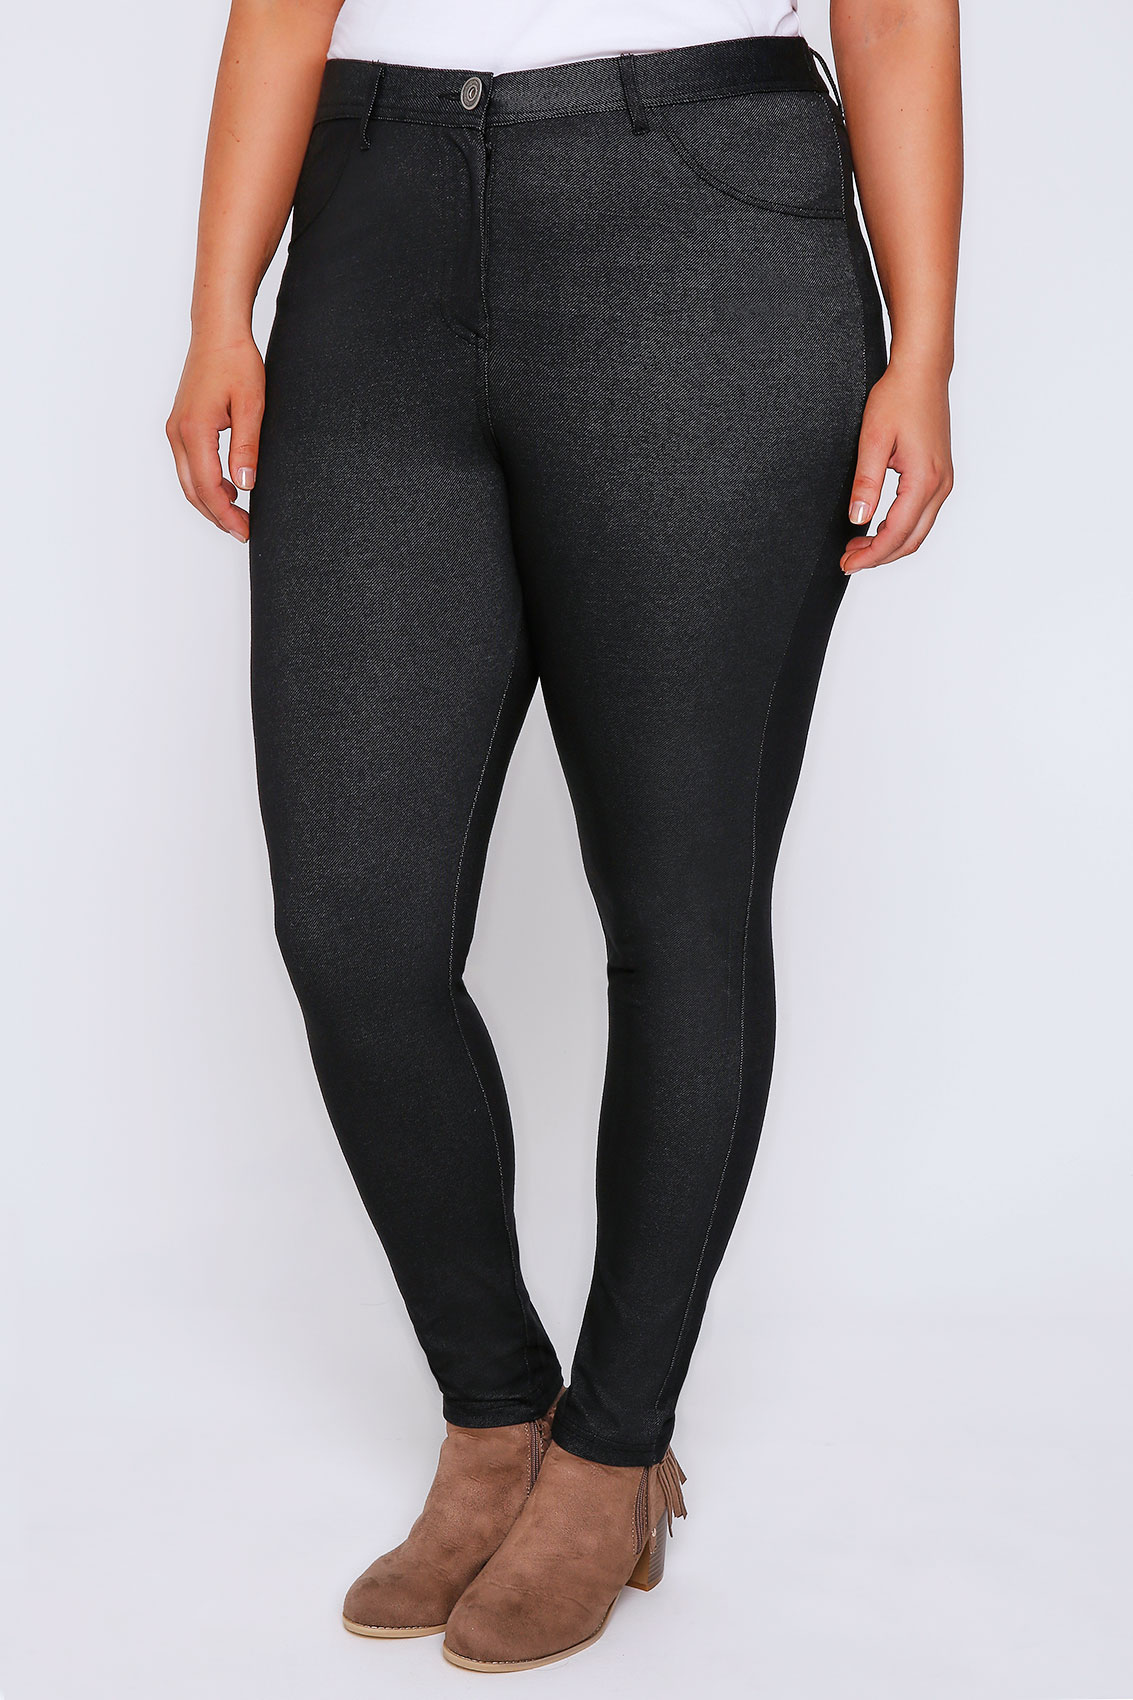 Discover skinny jeans in plus sizes at Avenue. Also, find exclusive extended sizes and petites and talls online at chaplin-favor.tk Free shipping available!